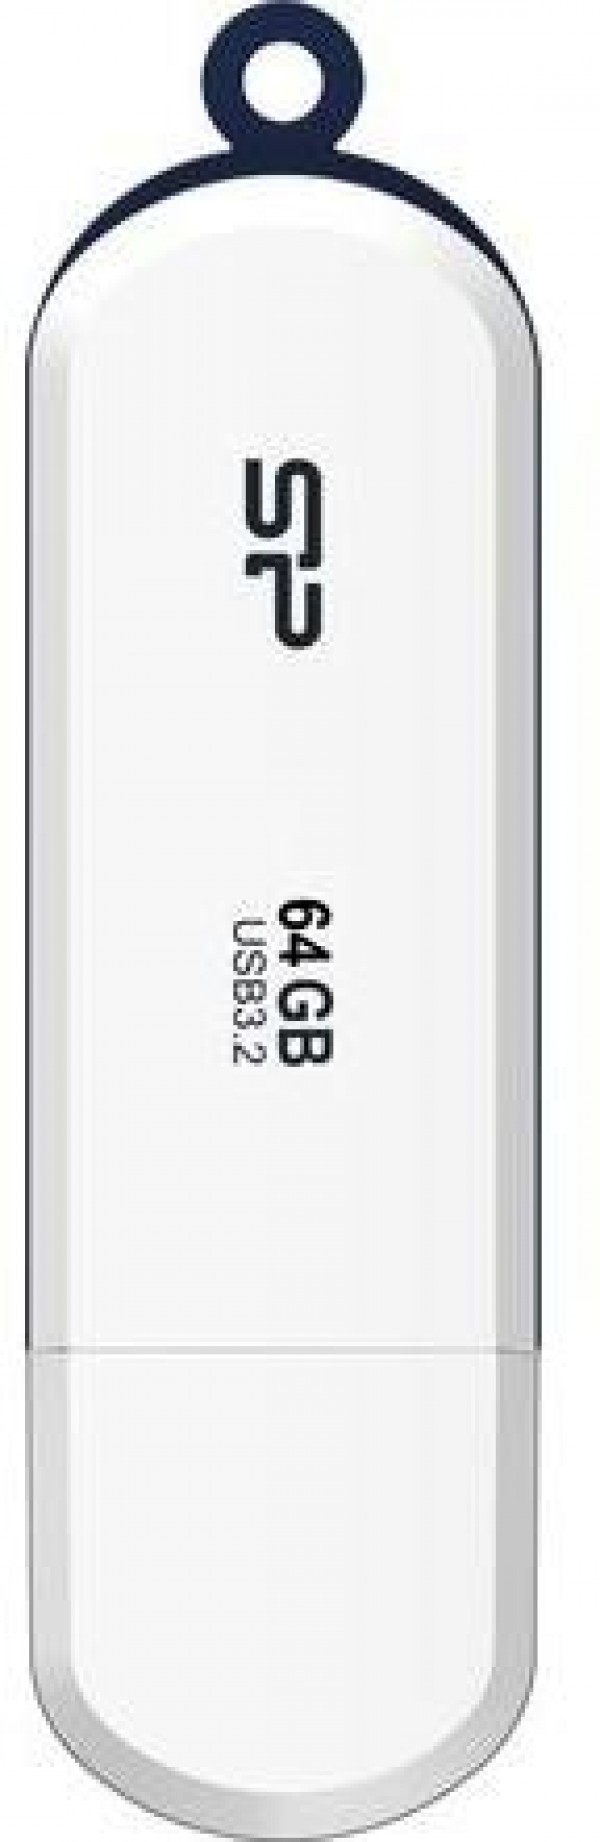 Flash Drive Silicon Power 64GB Blaze B32 USB3.2 SP064GBUF3B32V1W White